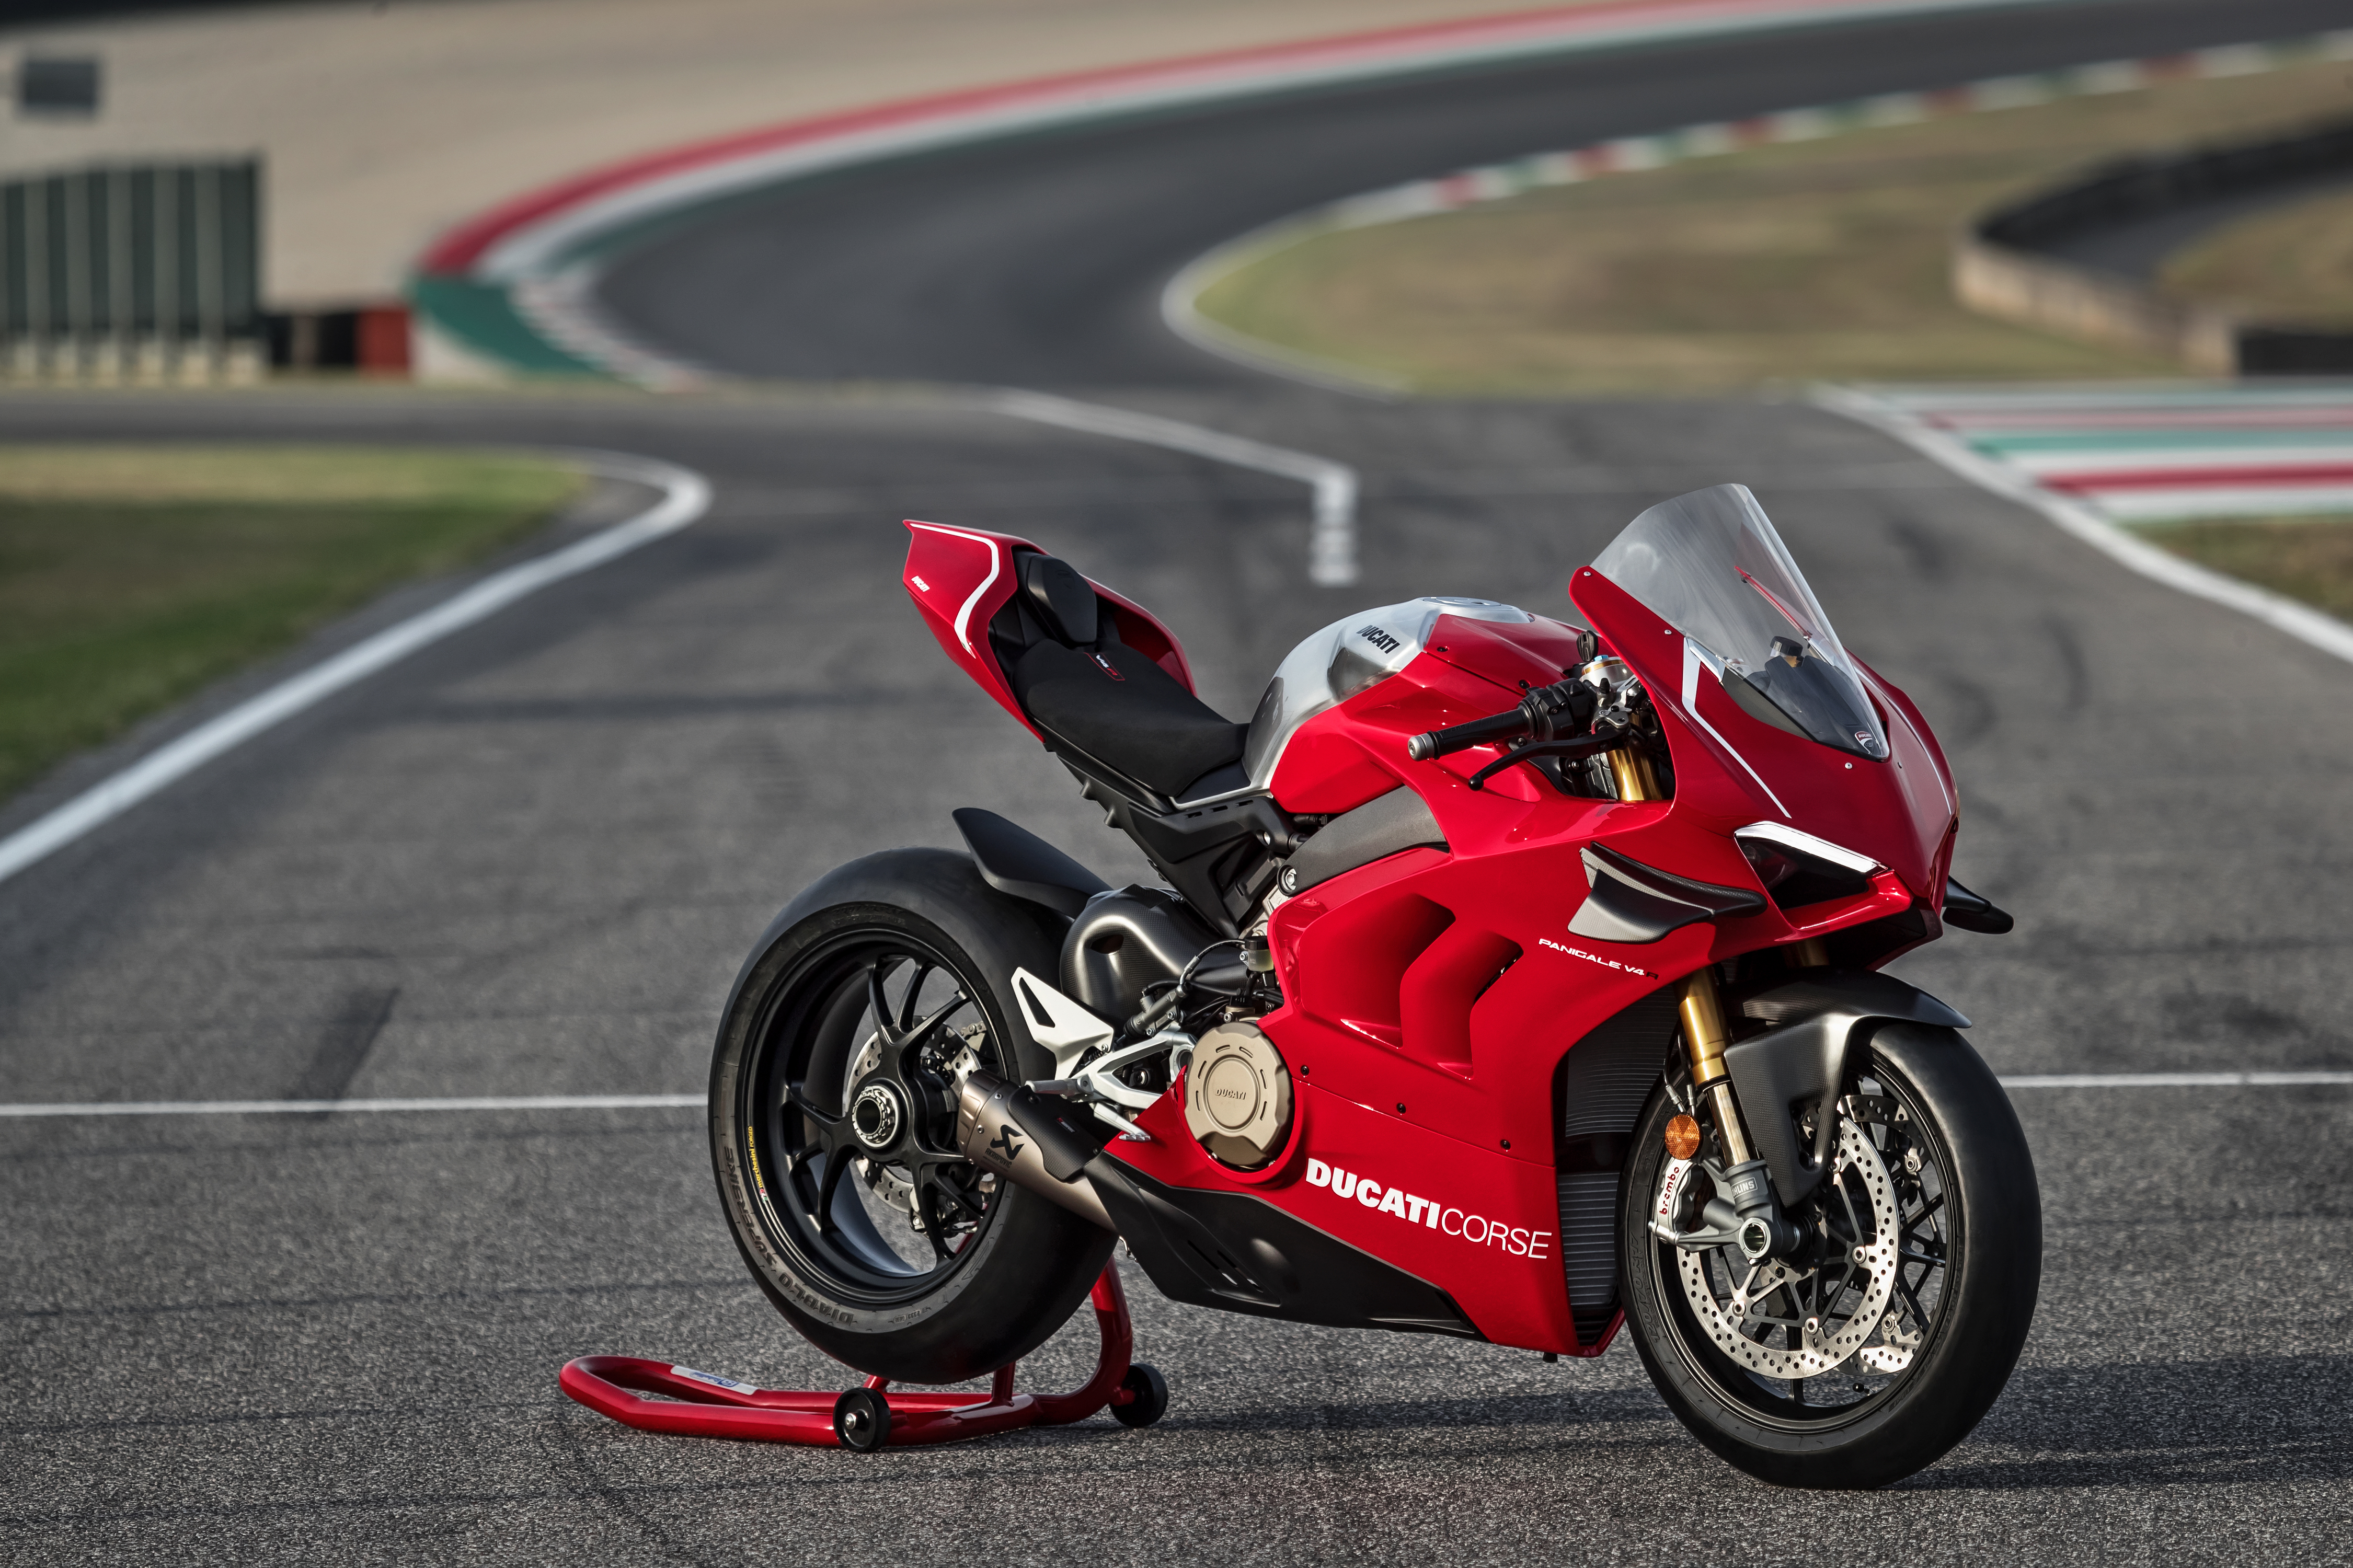 2019 Ducati Panigale V4 R Top Speed